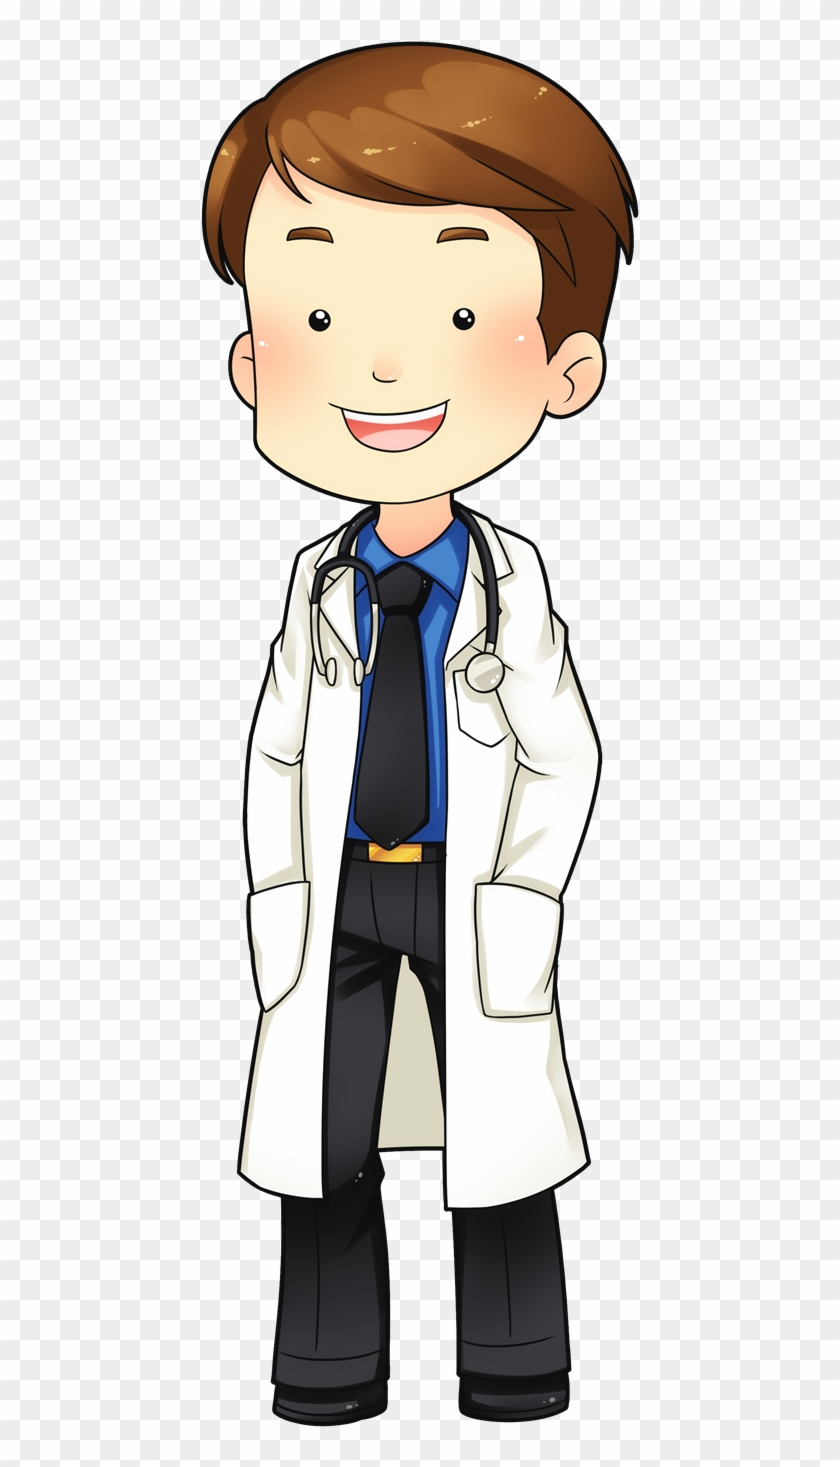 Doctor Free To Use Clipart - Doctor Clipart #18484